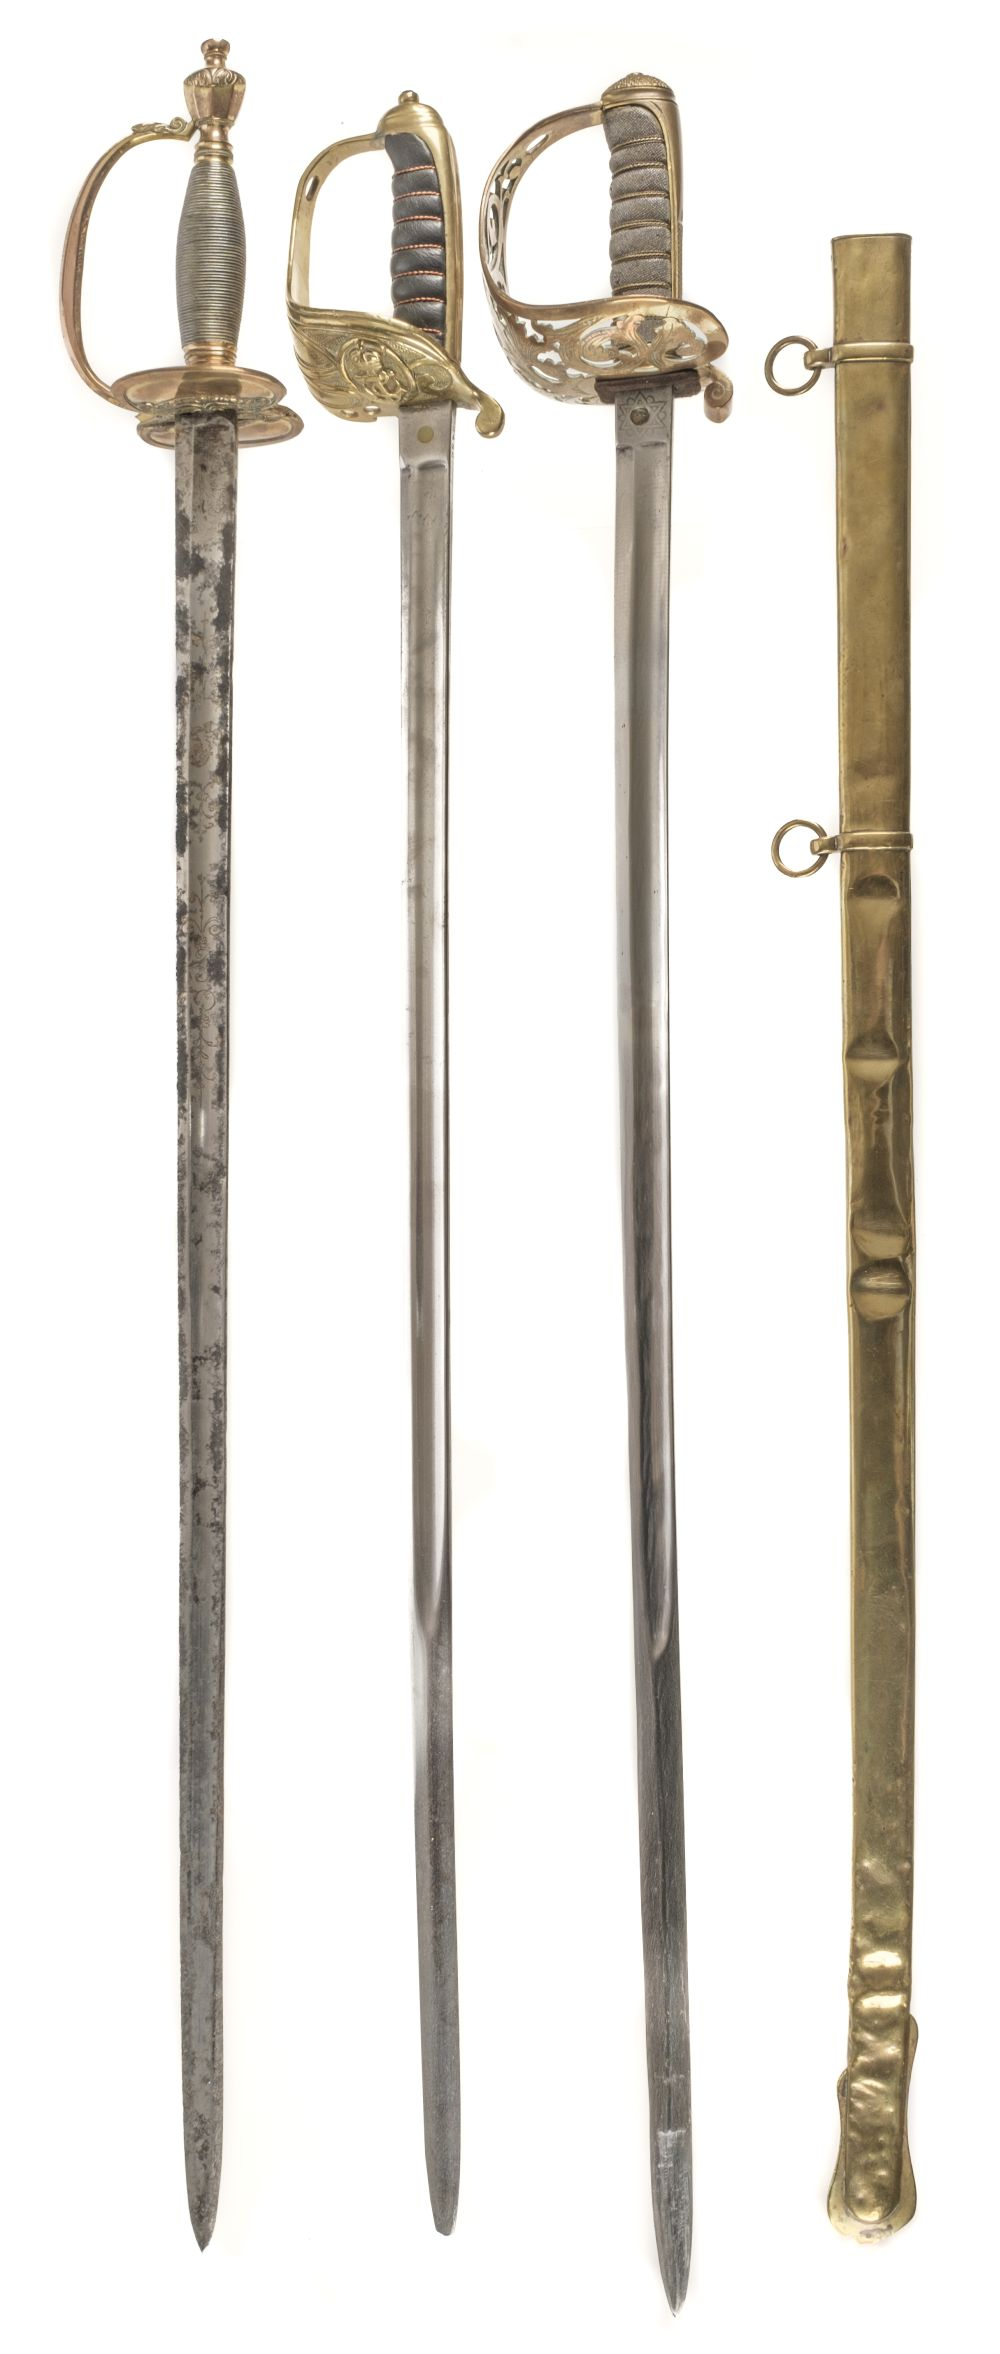 * Sword. Victorian Officer's Sword and others